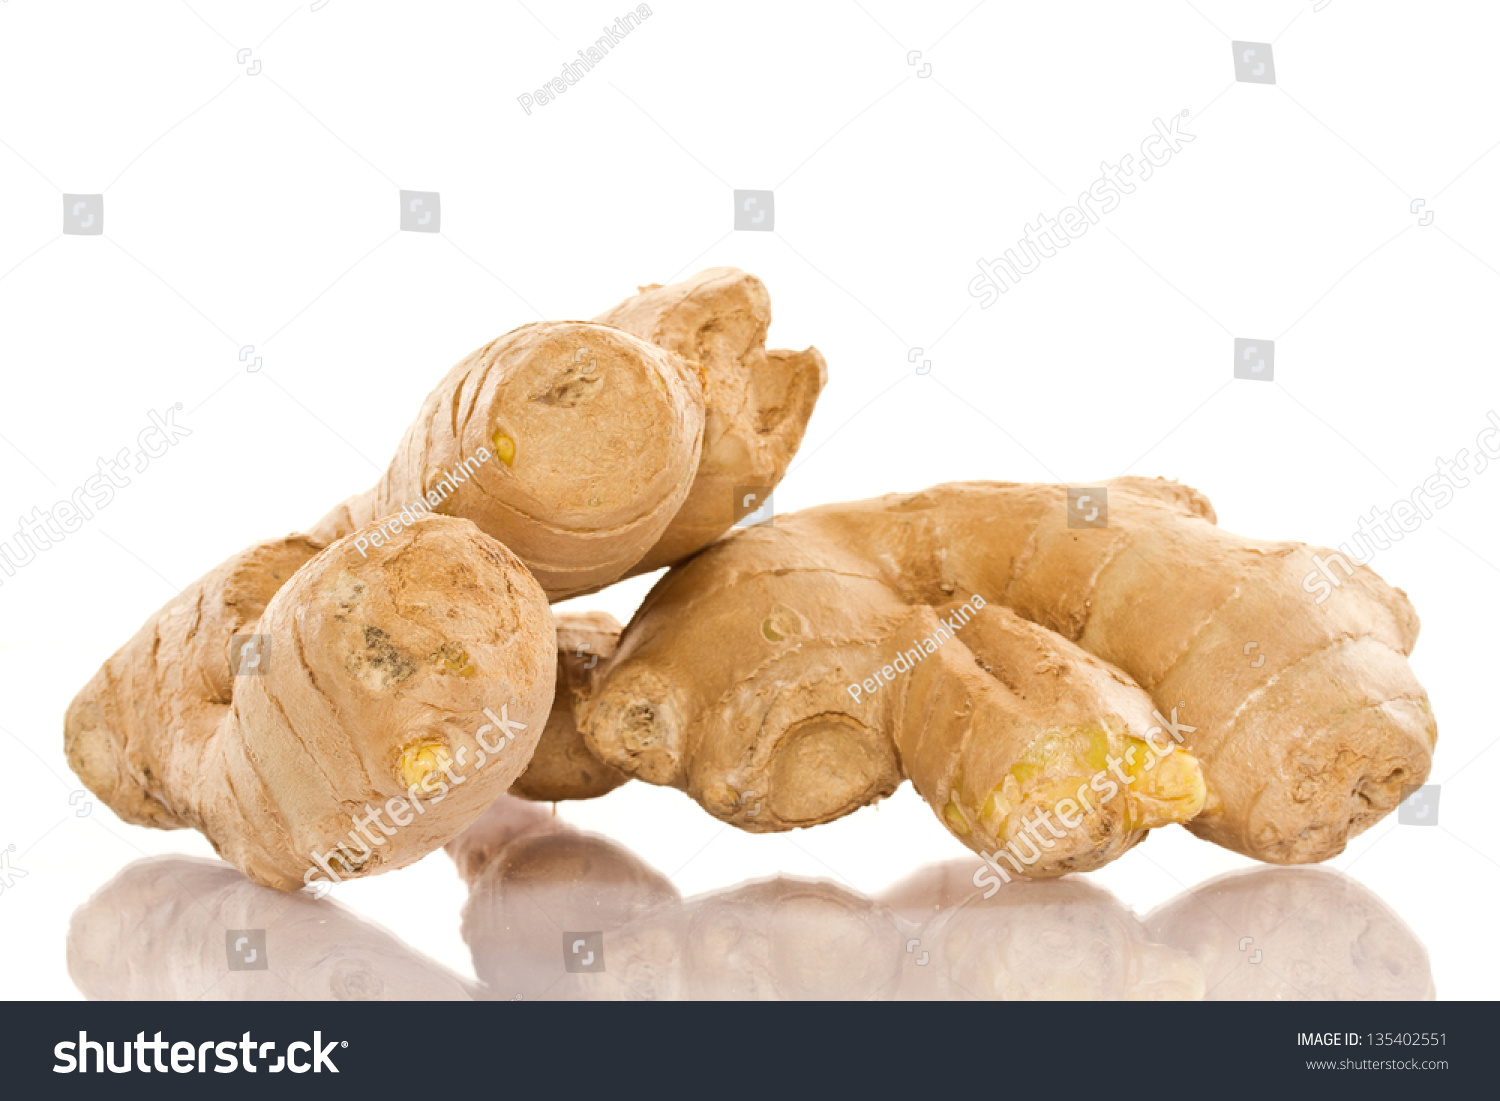 how to tell if ginger is ripe